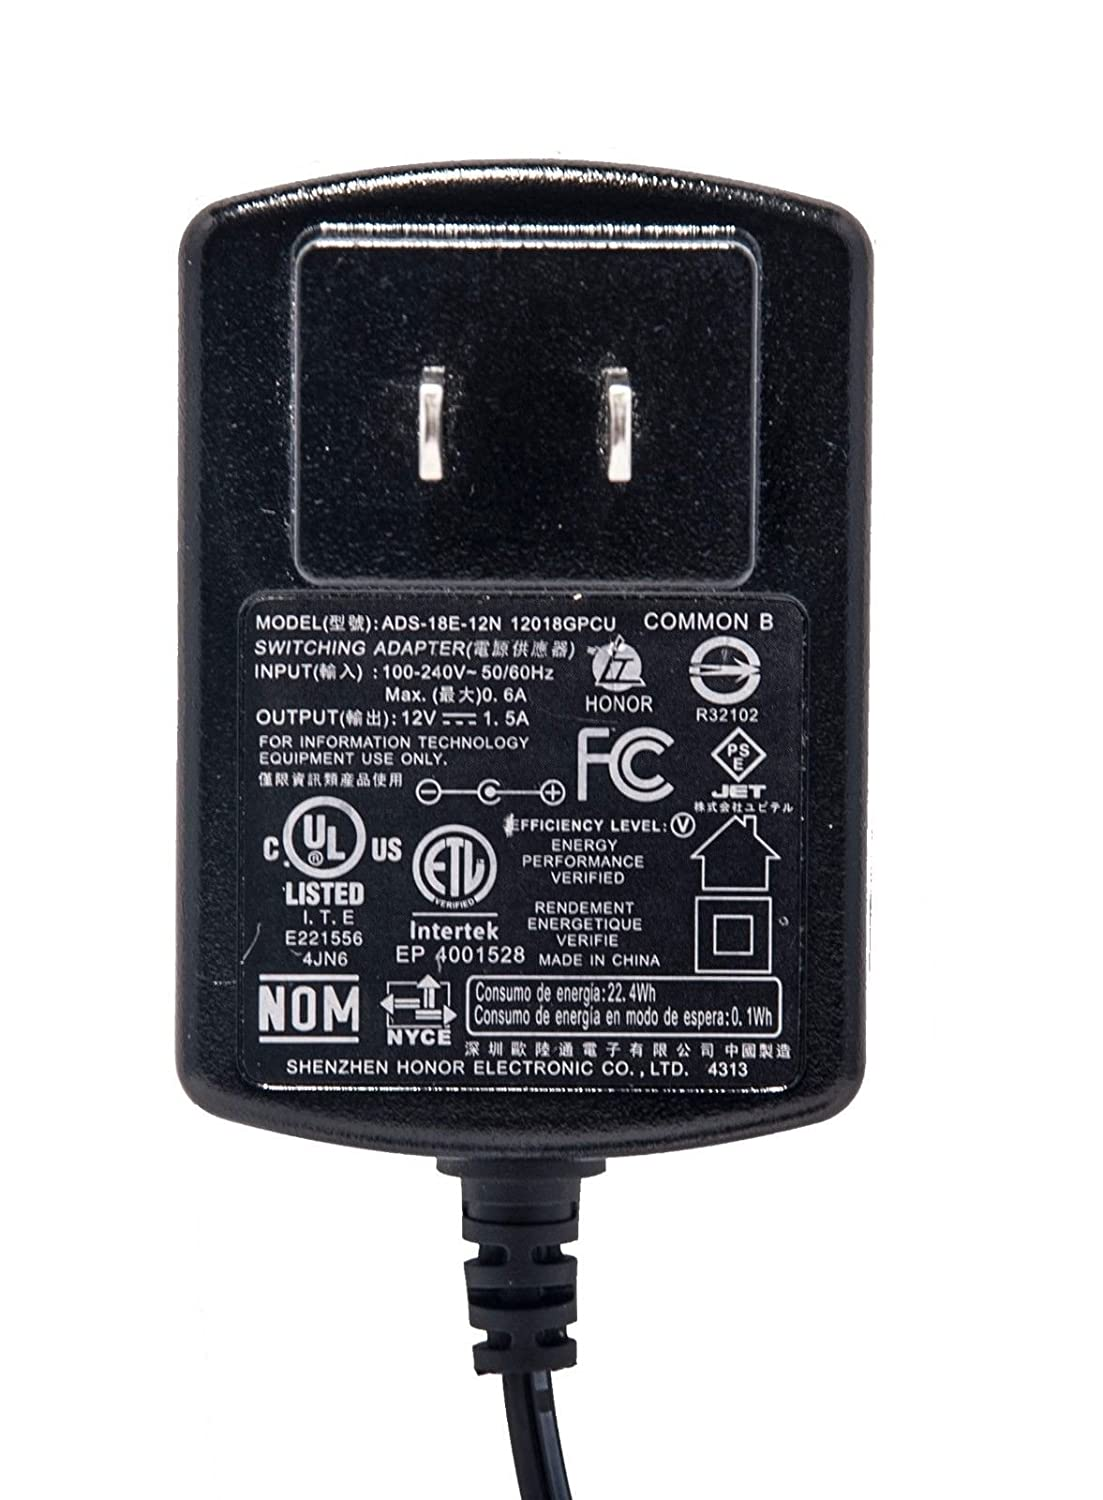 AC Adapter For COMMON ADS-18E-12N 12018GPCU Seagate HDD Switching Power Supply